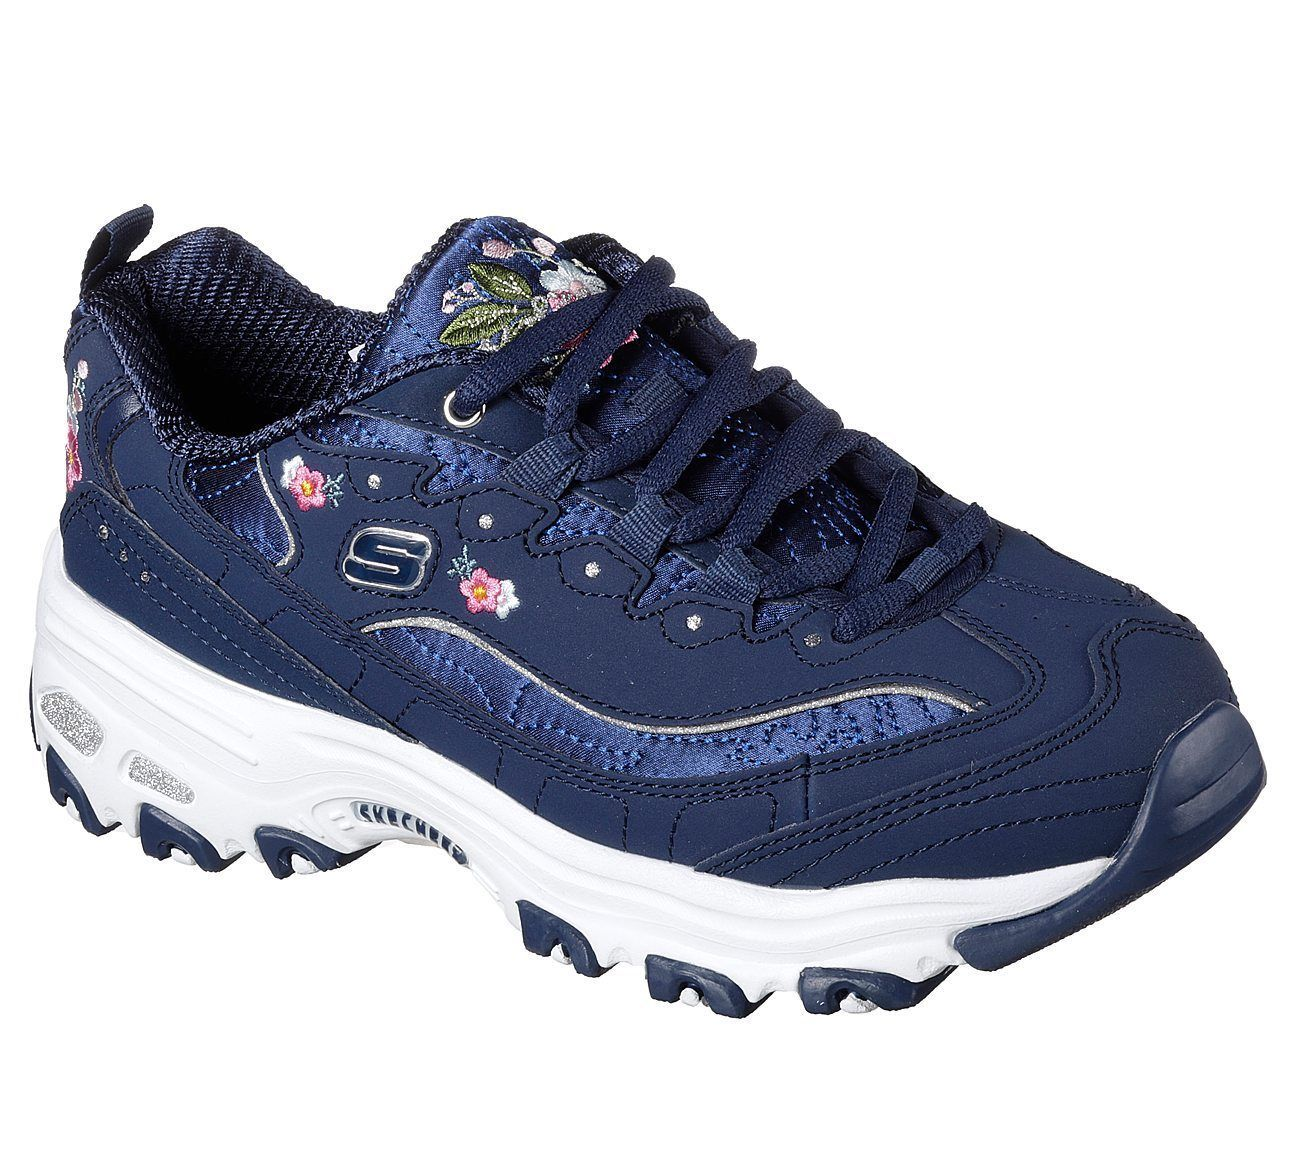 11977 Navy Dlites Skechers Shoes Women Sporty Casual Comfort Memory Foam Floral image 1